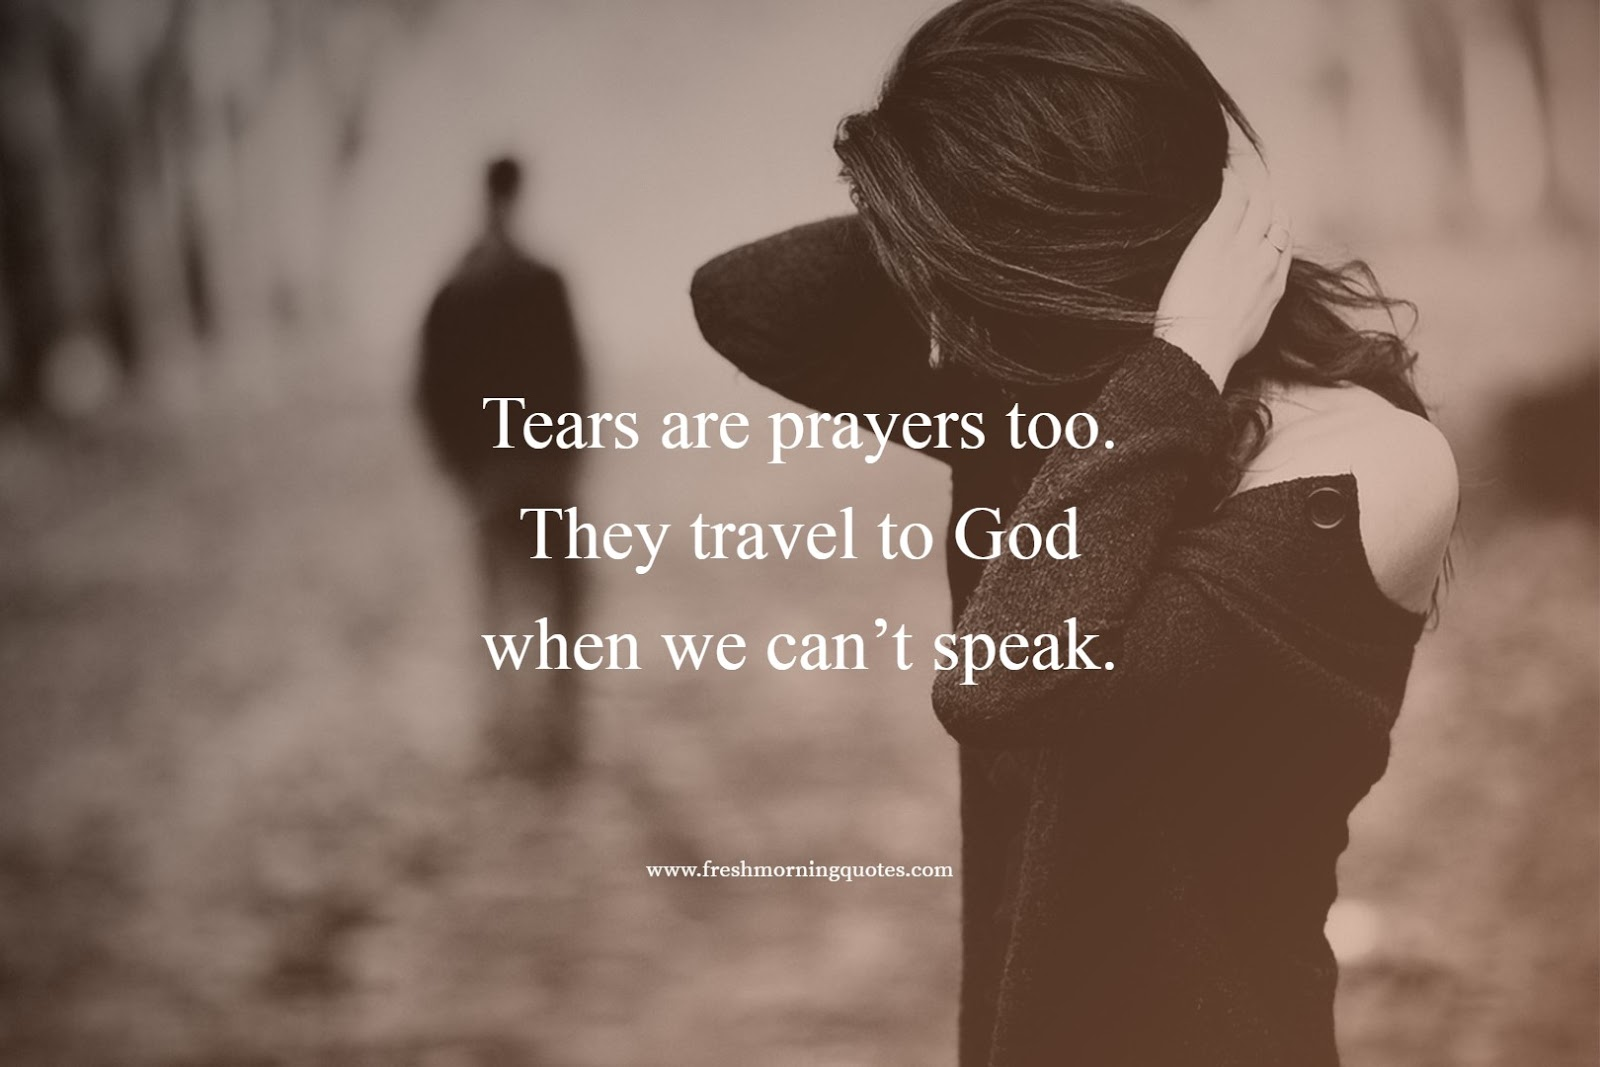 Tears are prayers when we cant speak to god